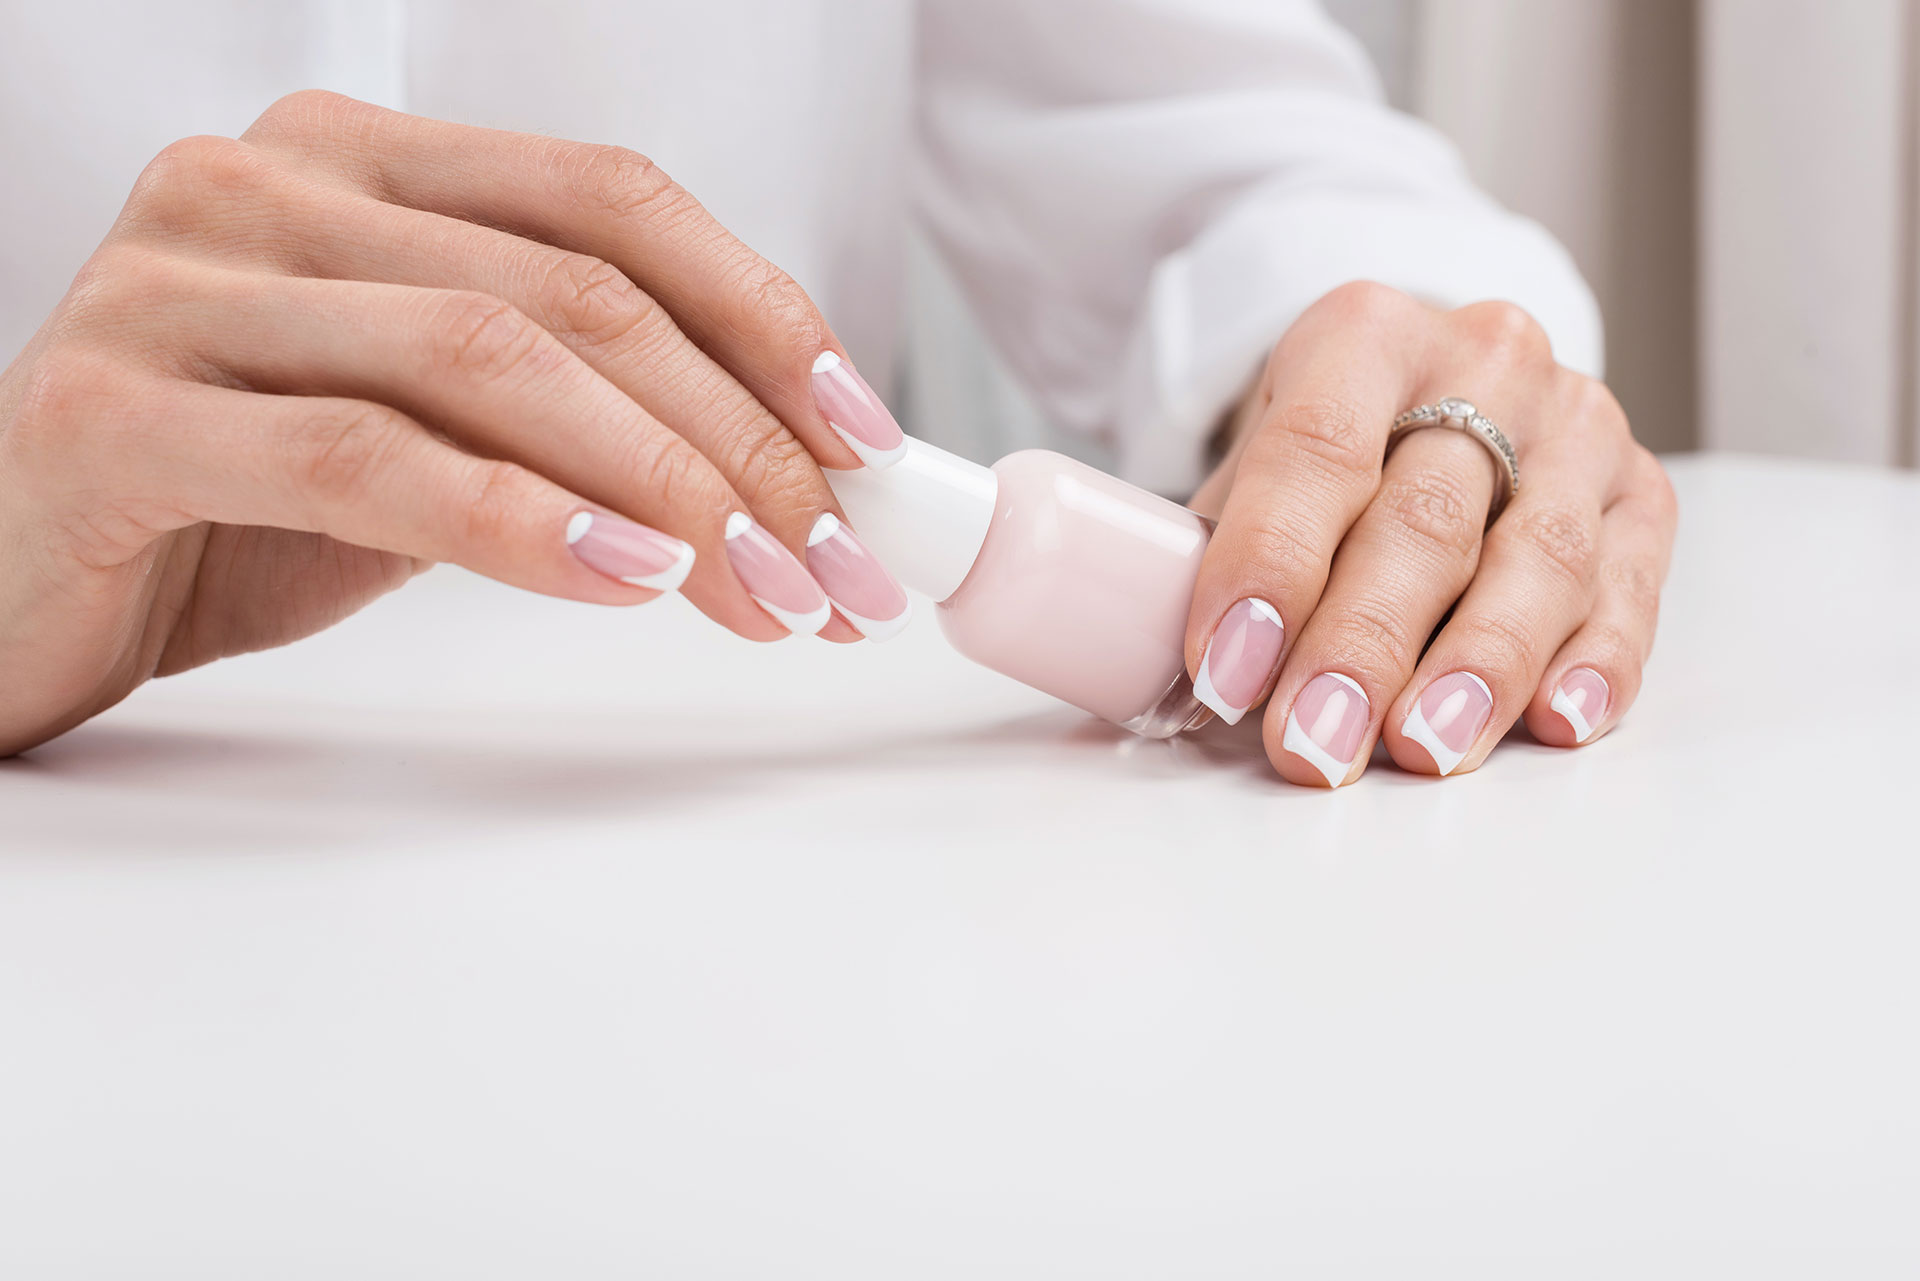 How to Make Your Nails Nice, Healthy and Shiny